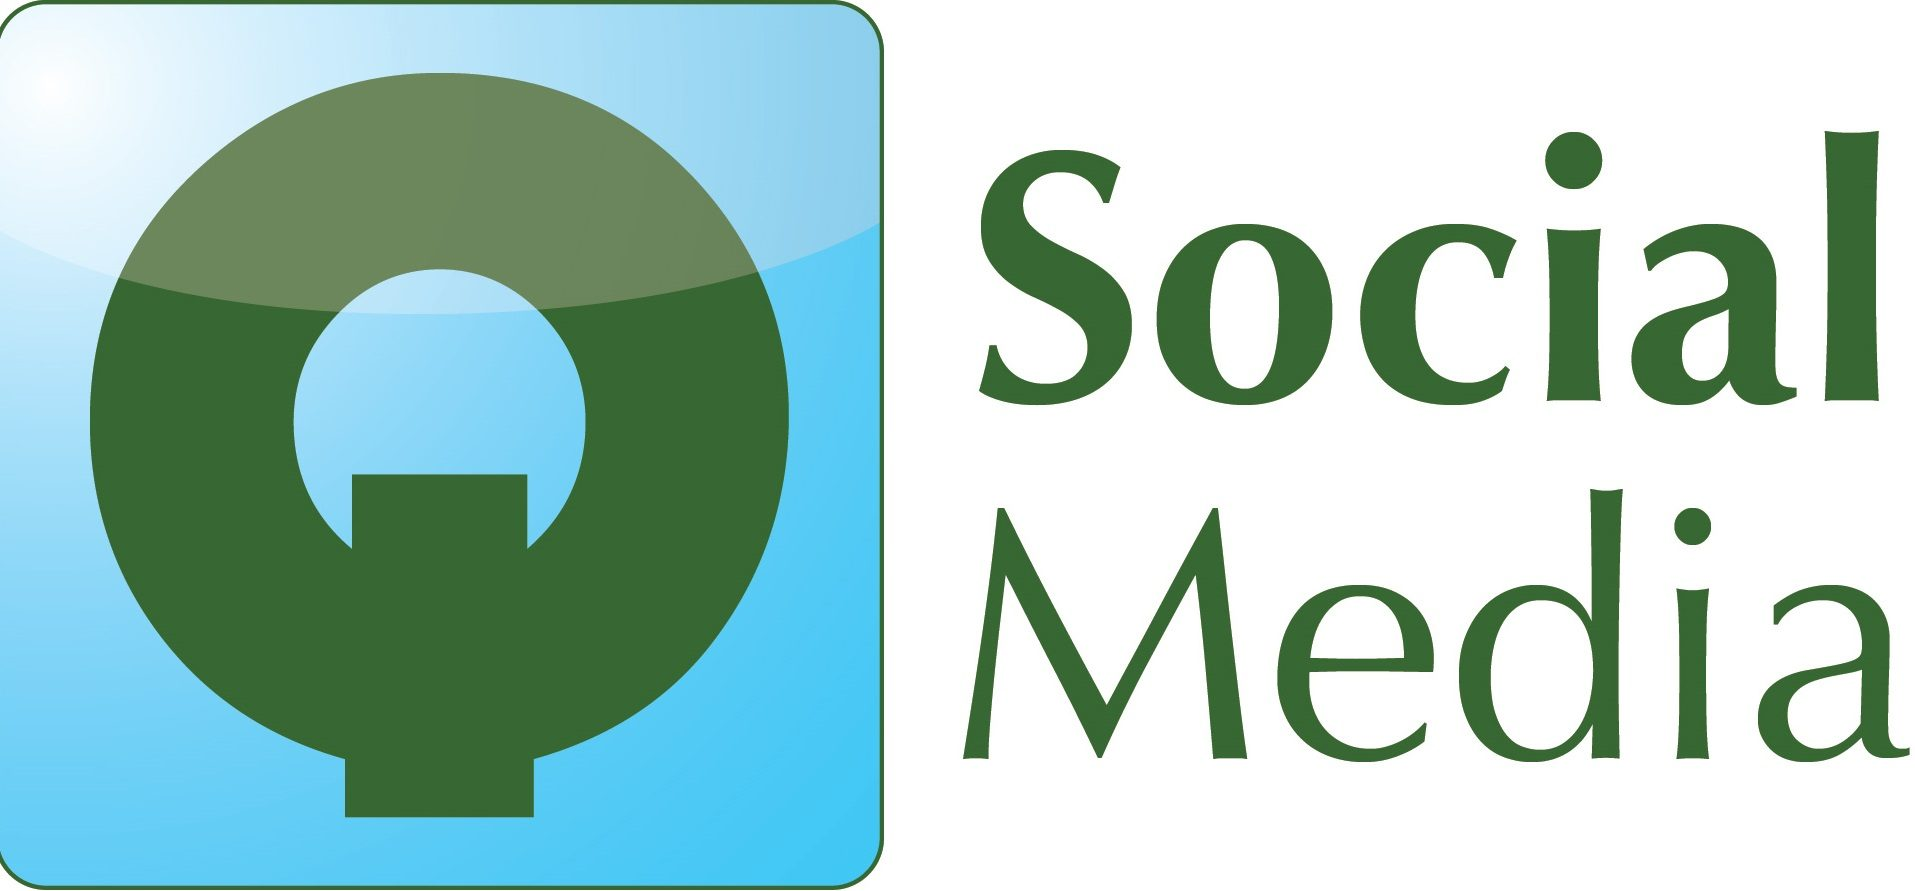 Digital Marketing & Social Media Agency